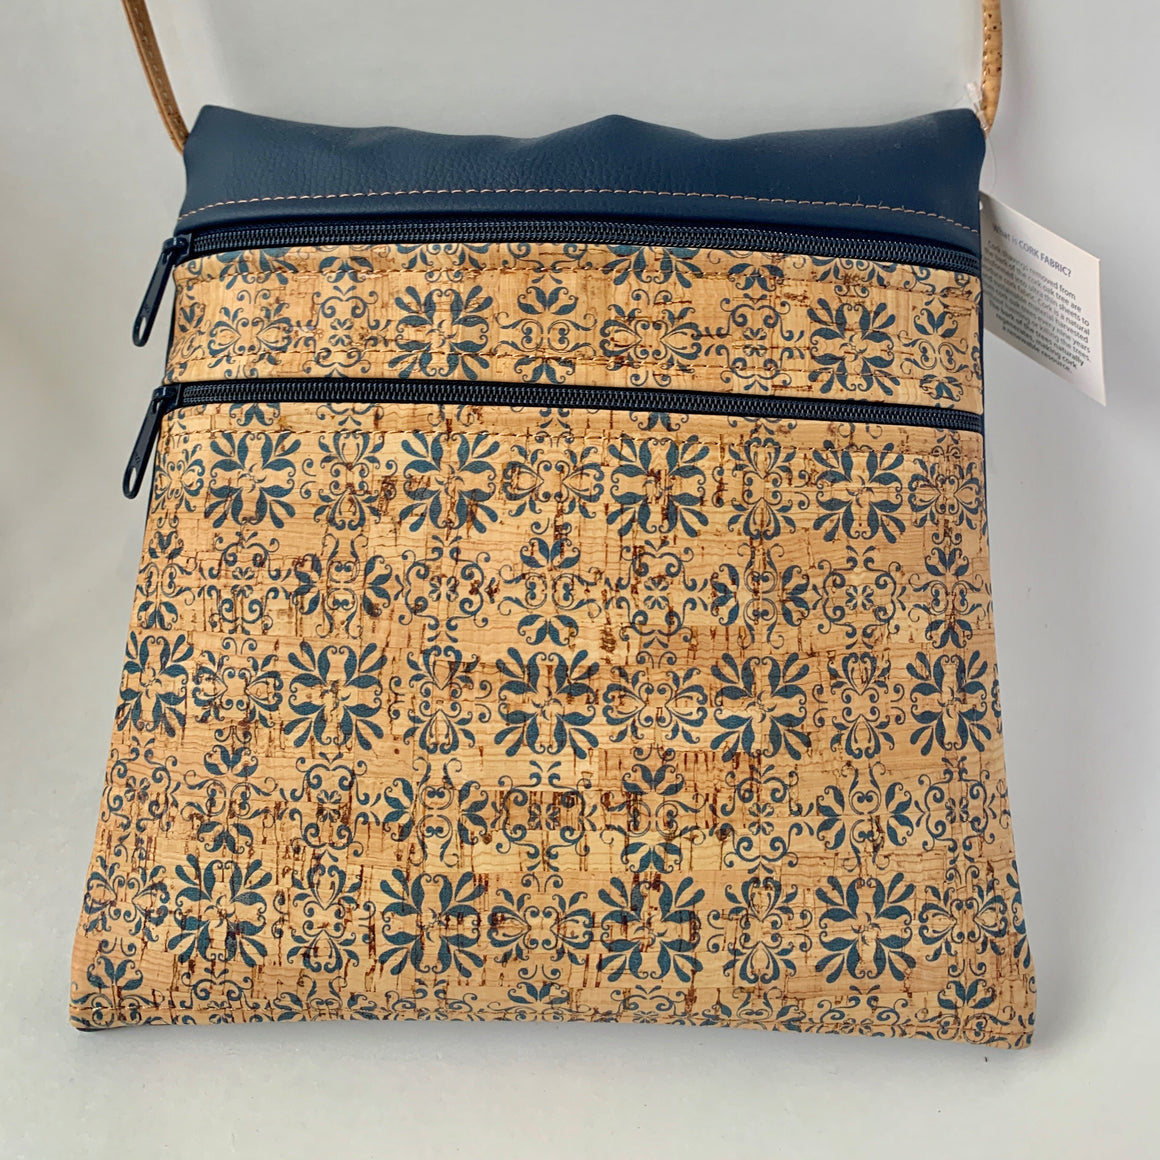 Cross Body Bag - Wide